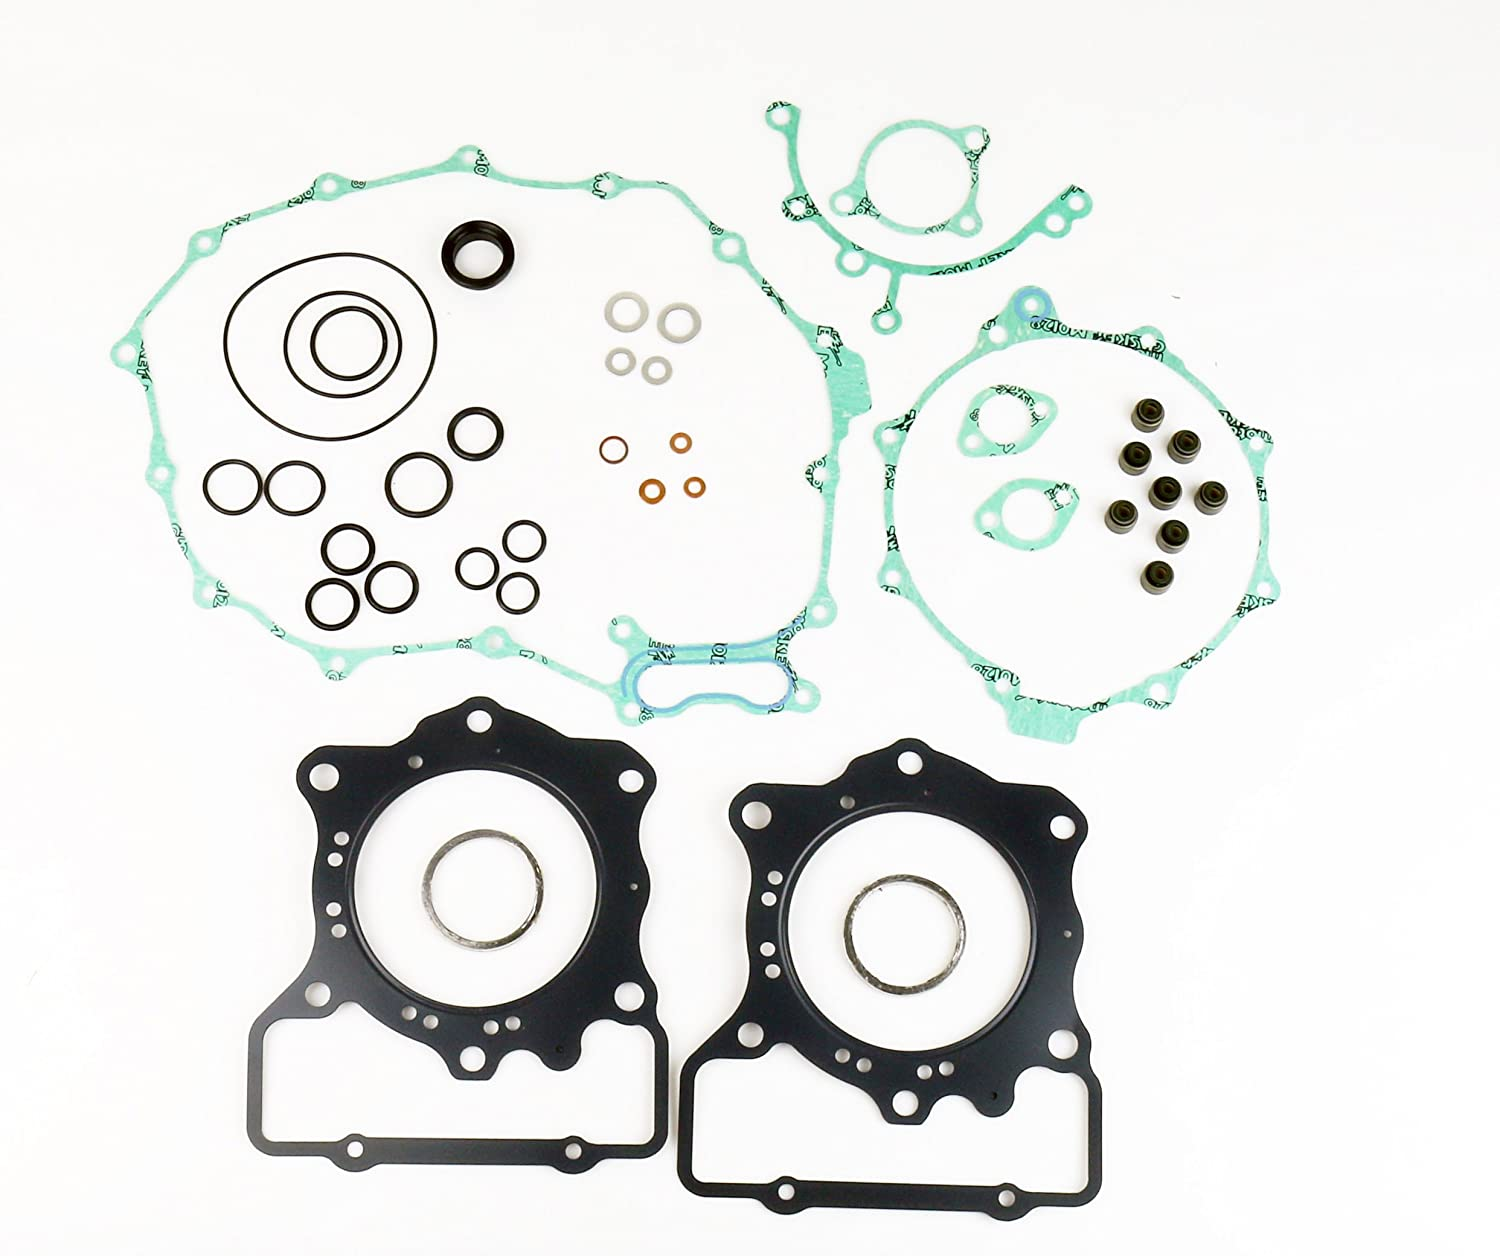 HONDA VTR 1000 F W//OUT VALV.COV.GASKET Athena Parts P400210850050 Complete Gaskets Kit